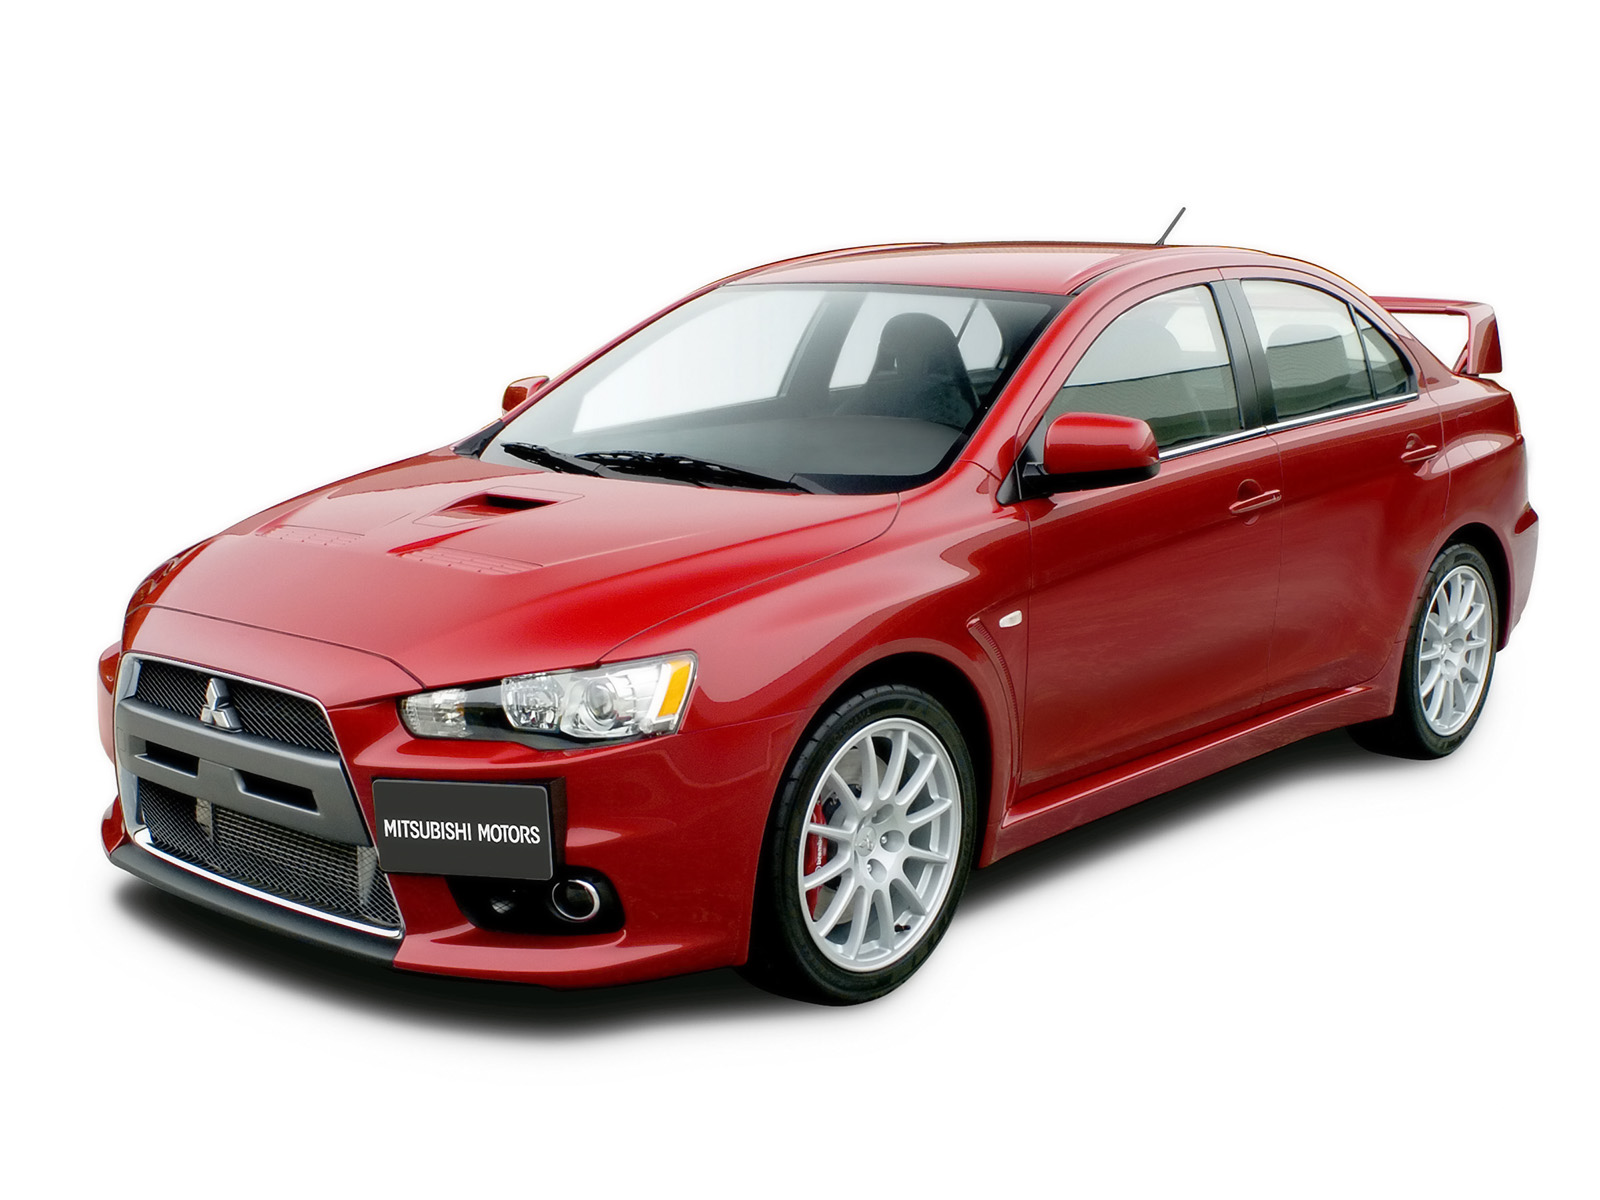 2006 Mitsubishi Lancer Evolution picture